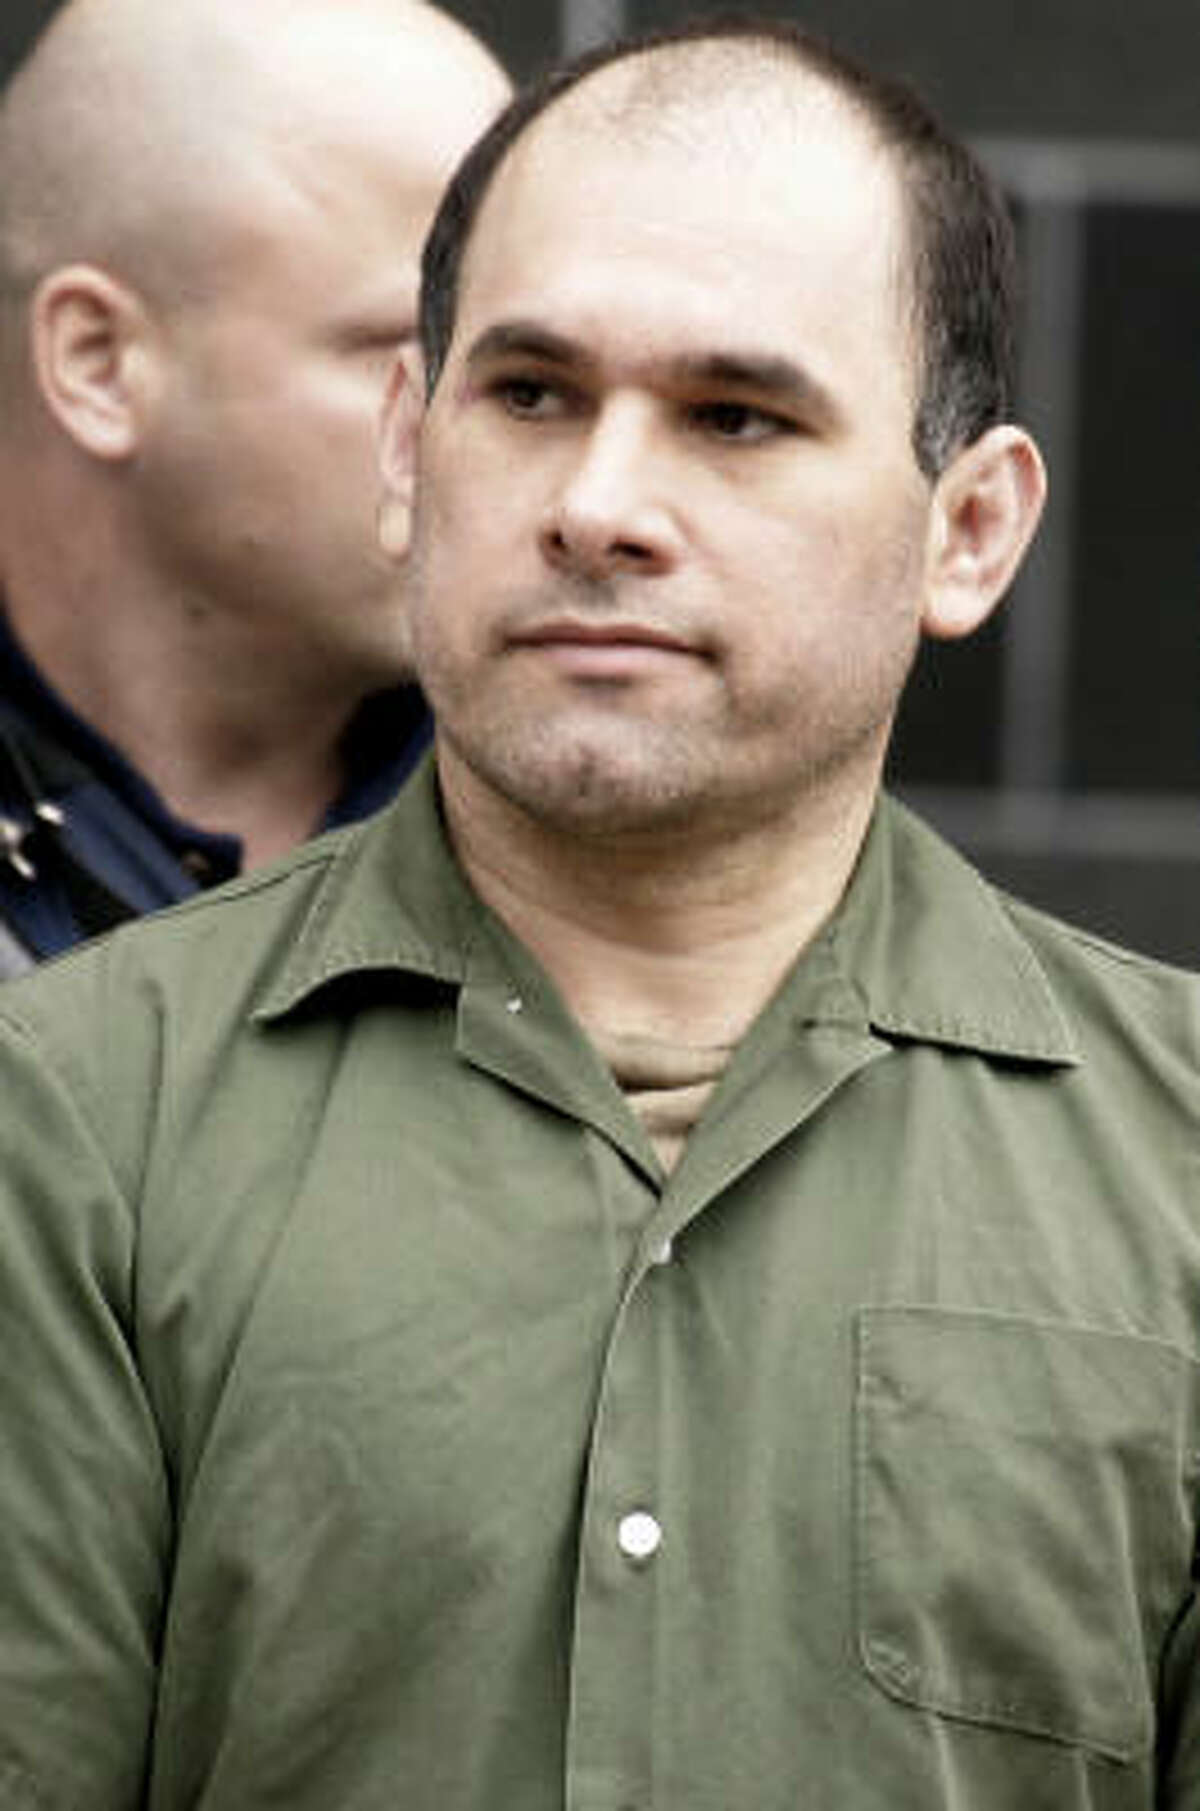 Osiel Cardenas-Guillen, 39, the accused Mexican drug kingpin extradited to the United States last month, leaves the federal courthouse in Houston after pleading not guilty Friday, Feb. 9, 2007, to charges connected to running a cartel that at its height smuggled four to six tons of cocaine per month into the country.